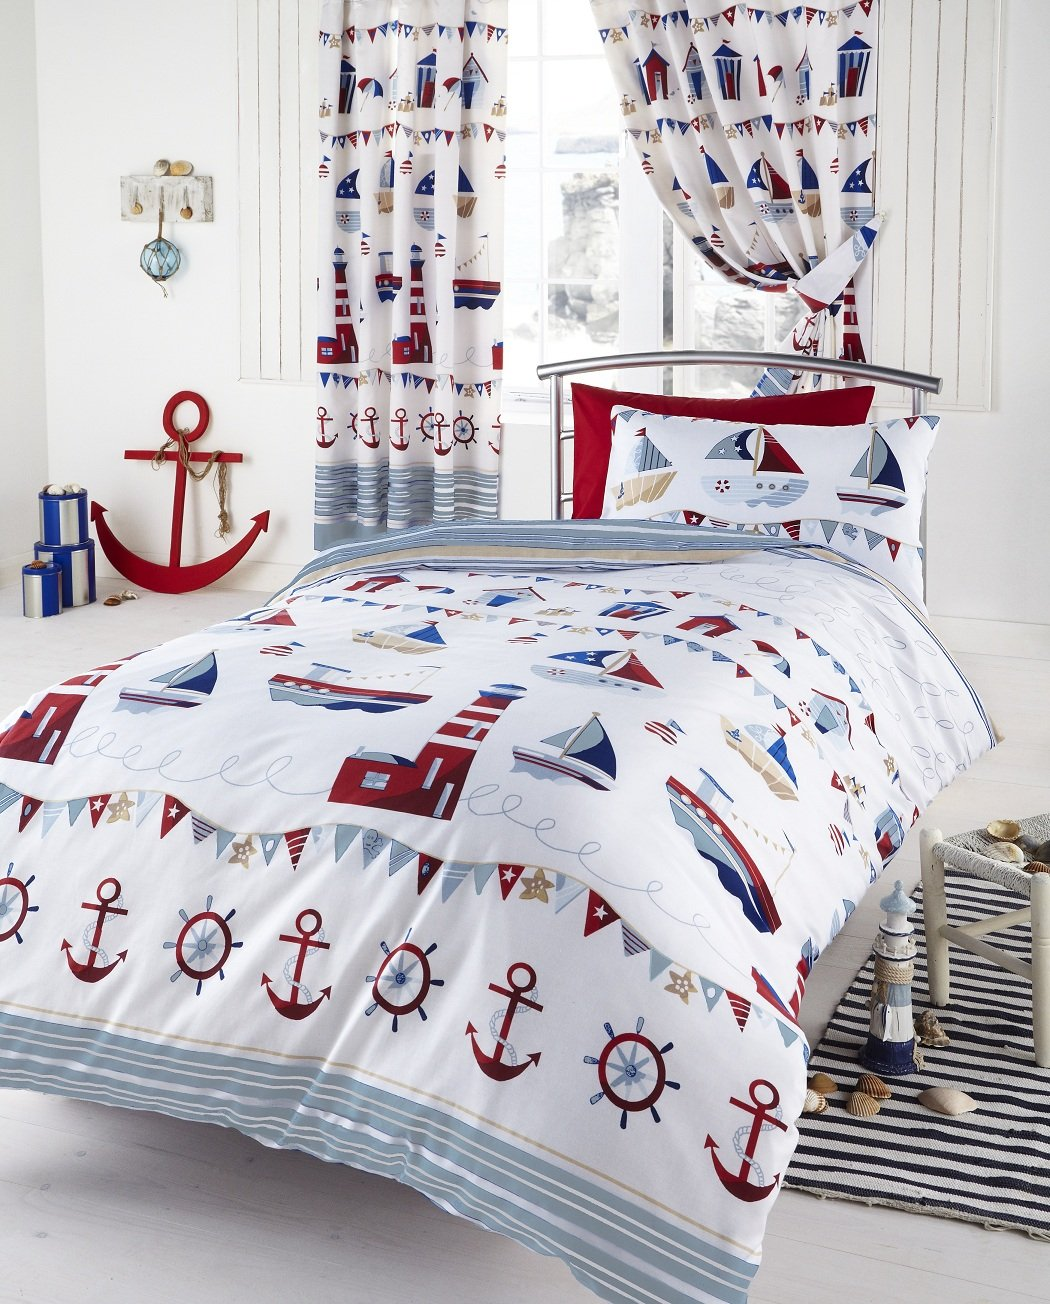 Lighthouse Bedroom Decor Boat Yard Ship Lighthouse Embroidered Double Bed Duvet Cover Quilt